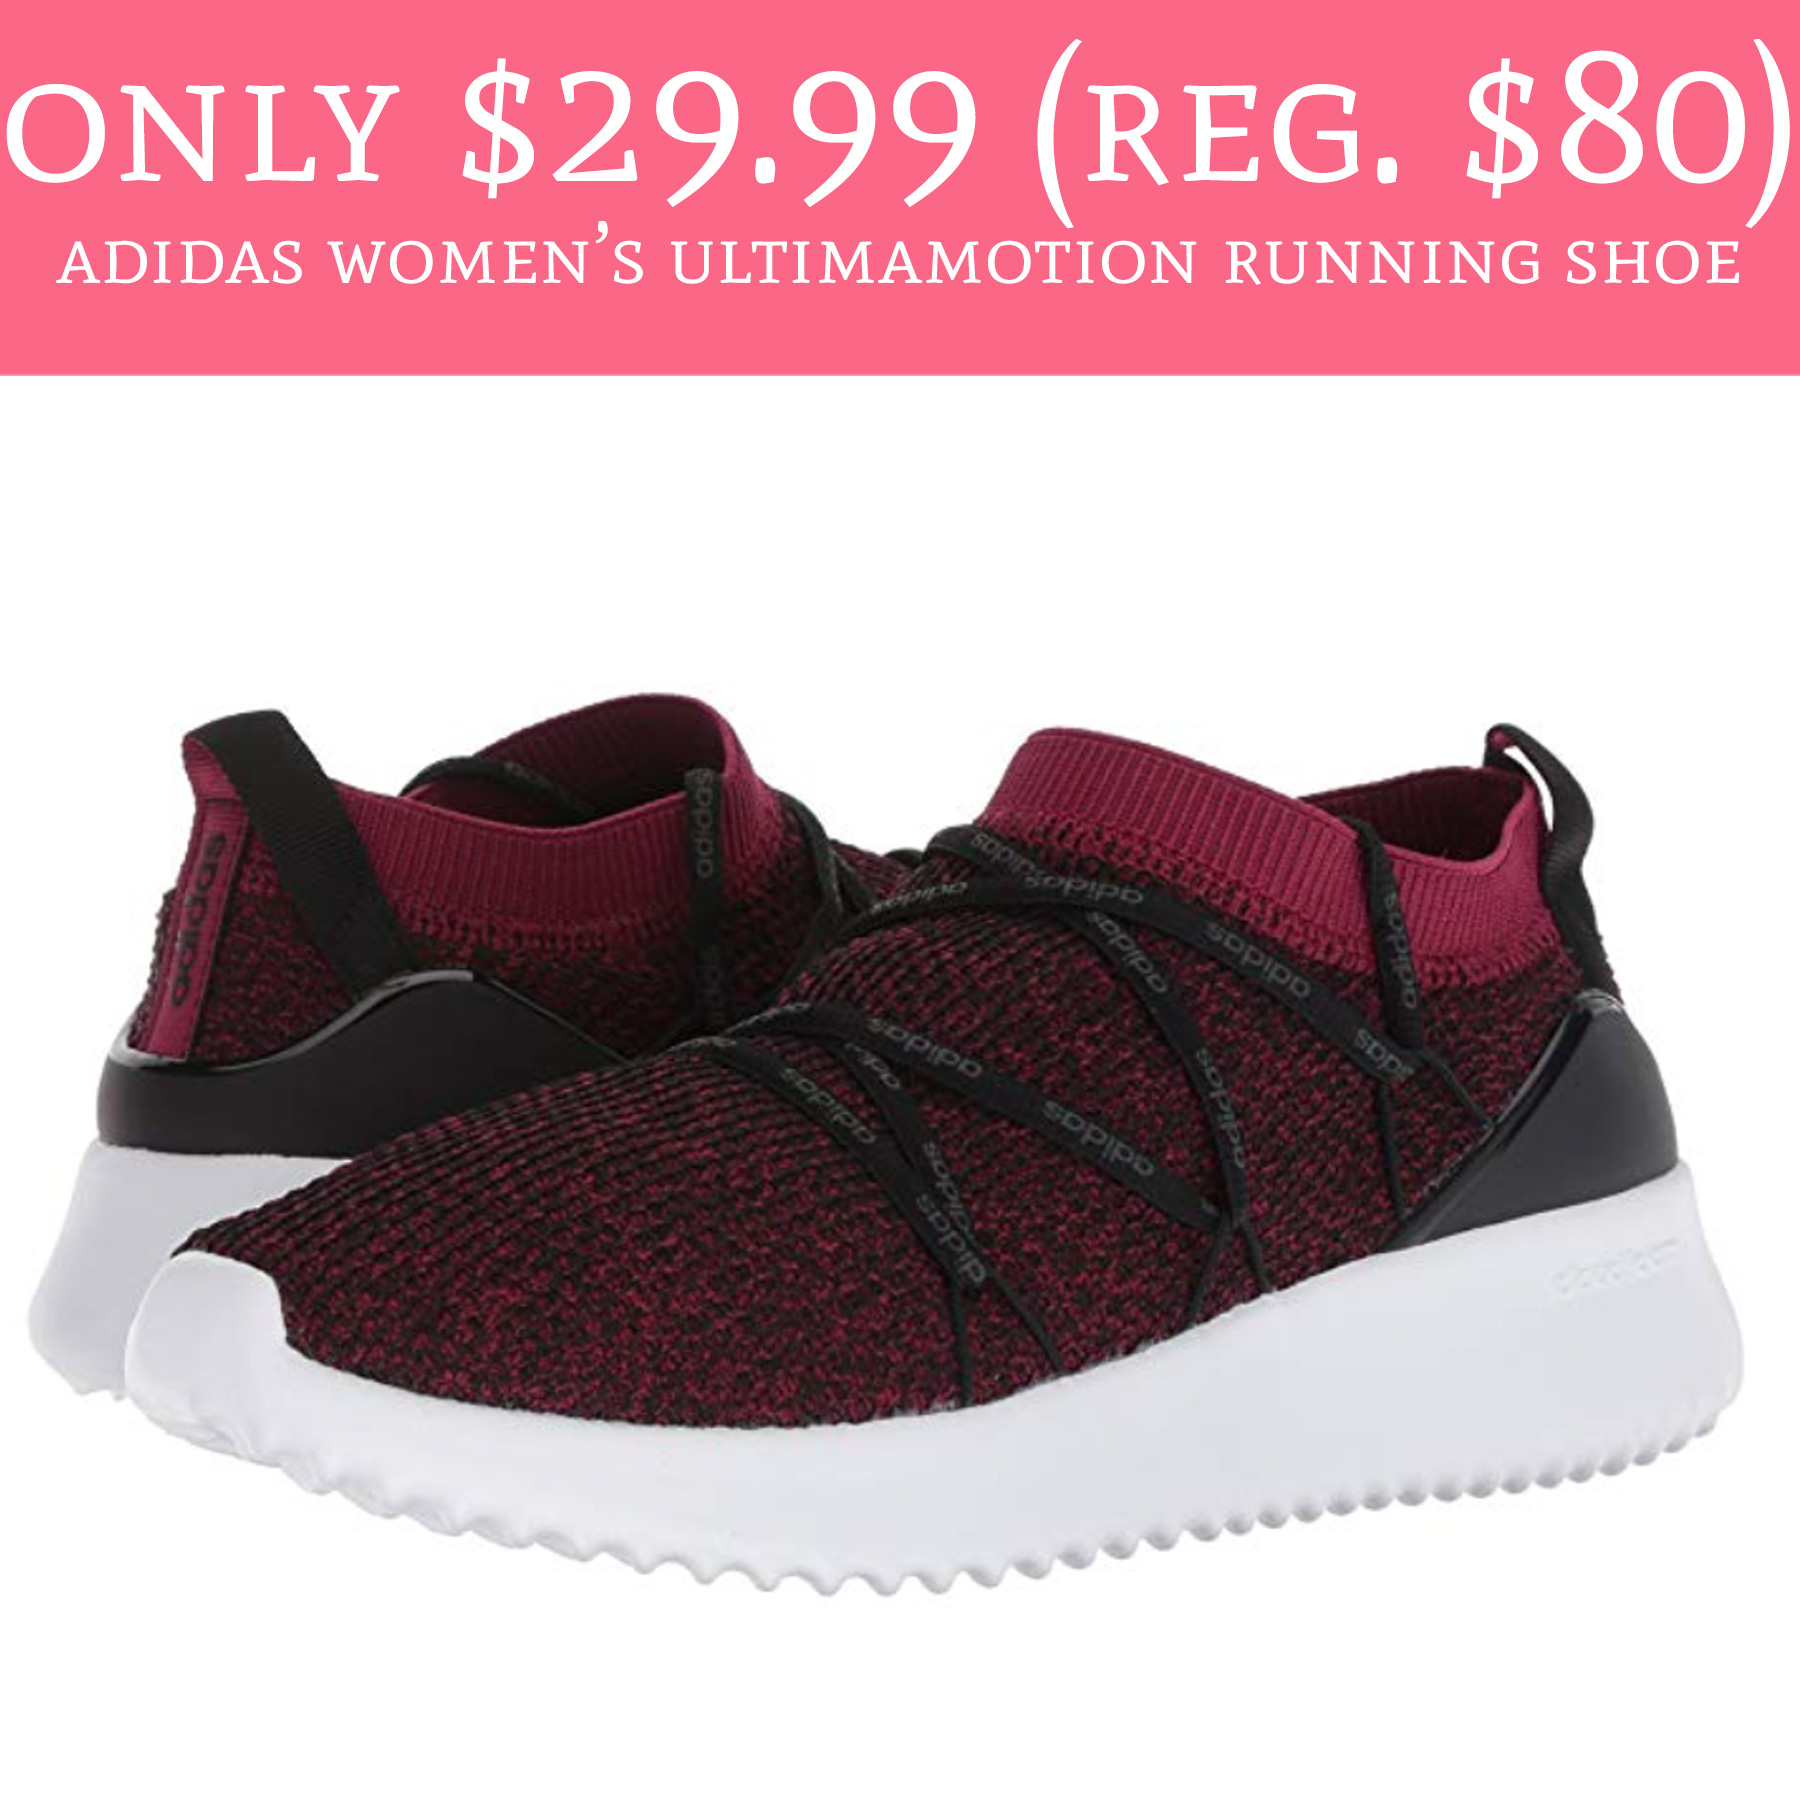 4aa5fdc95 Only  29.99 (Regular  80) Adidas Women s Ultimamotion Running shoes - Deal  Hunting Babe